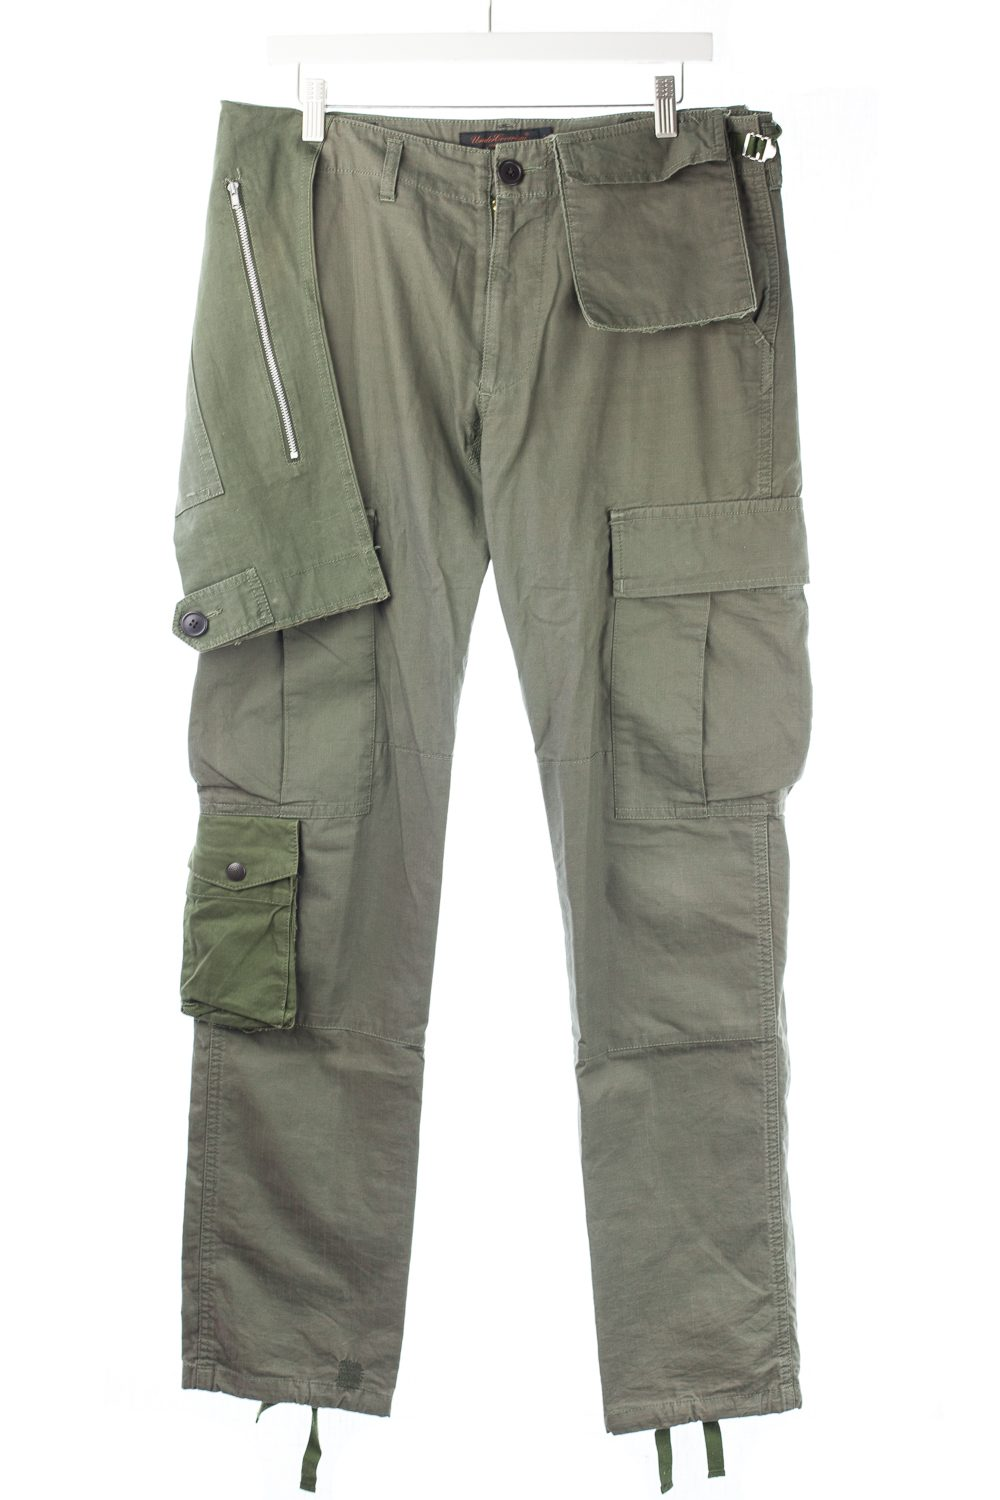 "FW03 ""Paper Doll"" Reconstructed Military Cargo Pants"